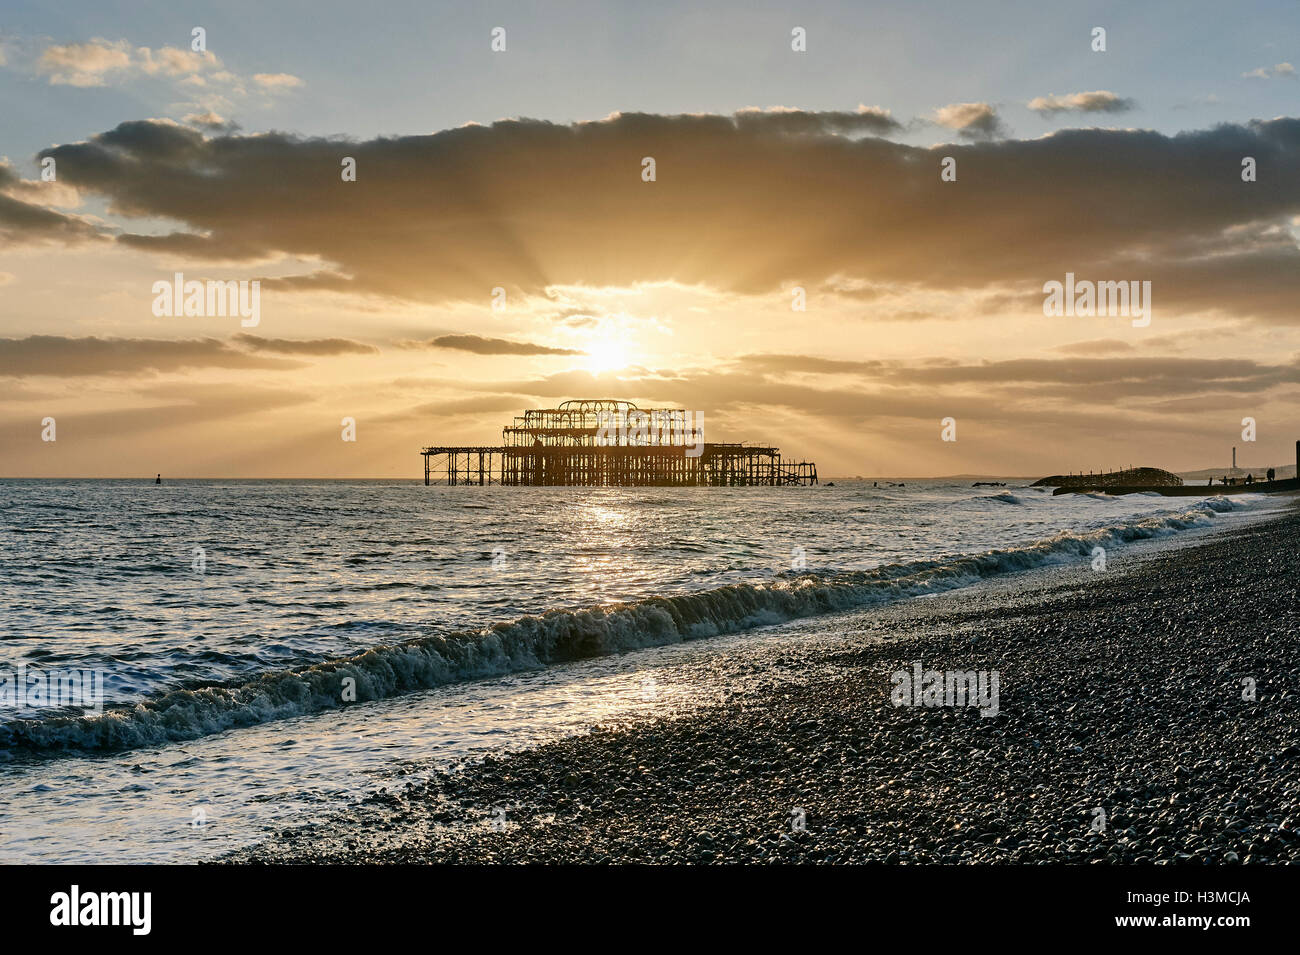 Brighton beach at sunset, England - Stock Image